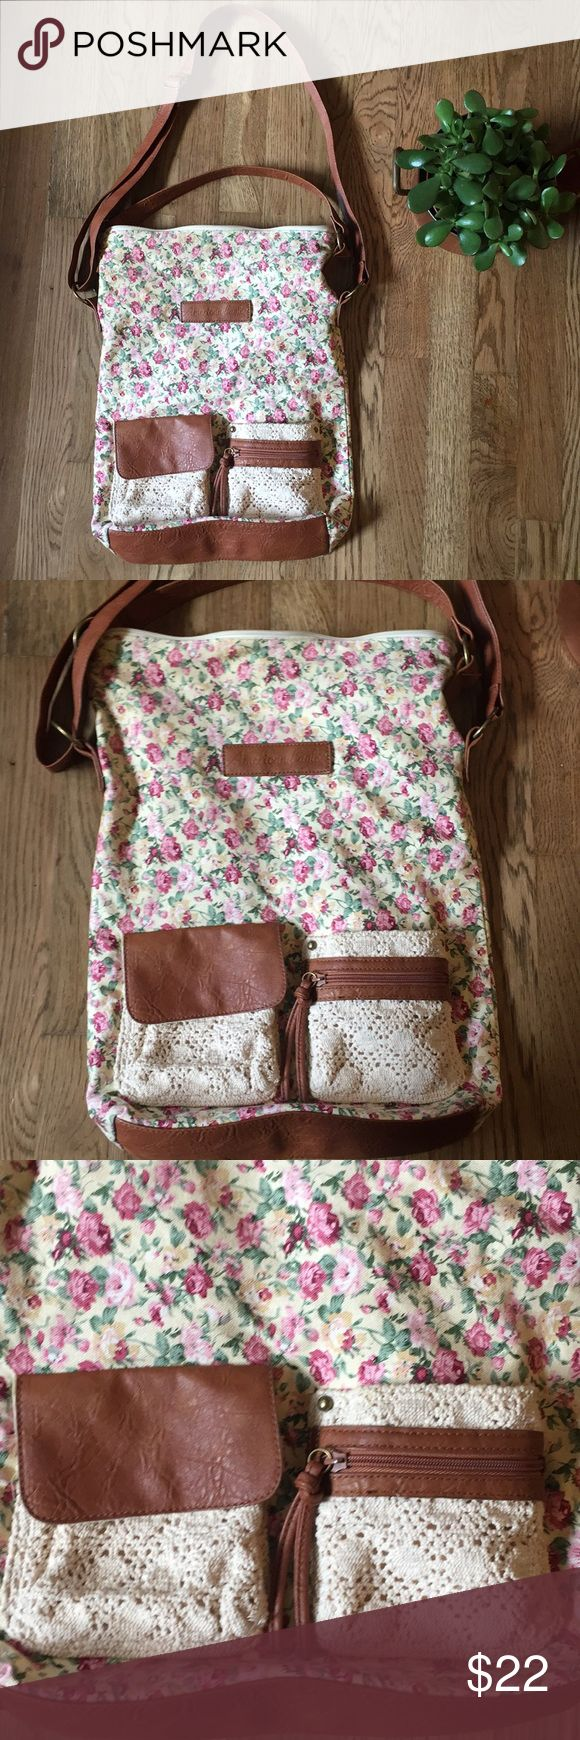 AE crossbody tote bag In great condition bag. Cute floral pattern. Some pen marks on the inside of the bag and one on the back. See pictures. Hardly noticeable. American Eagle Outfitters Bags Crossbody Bags